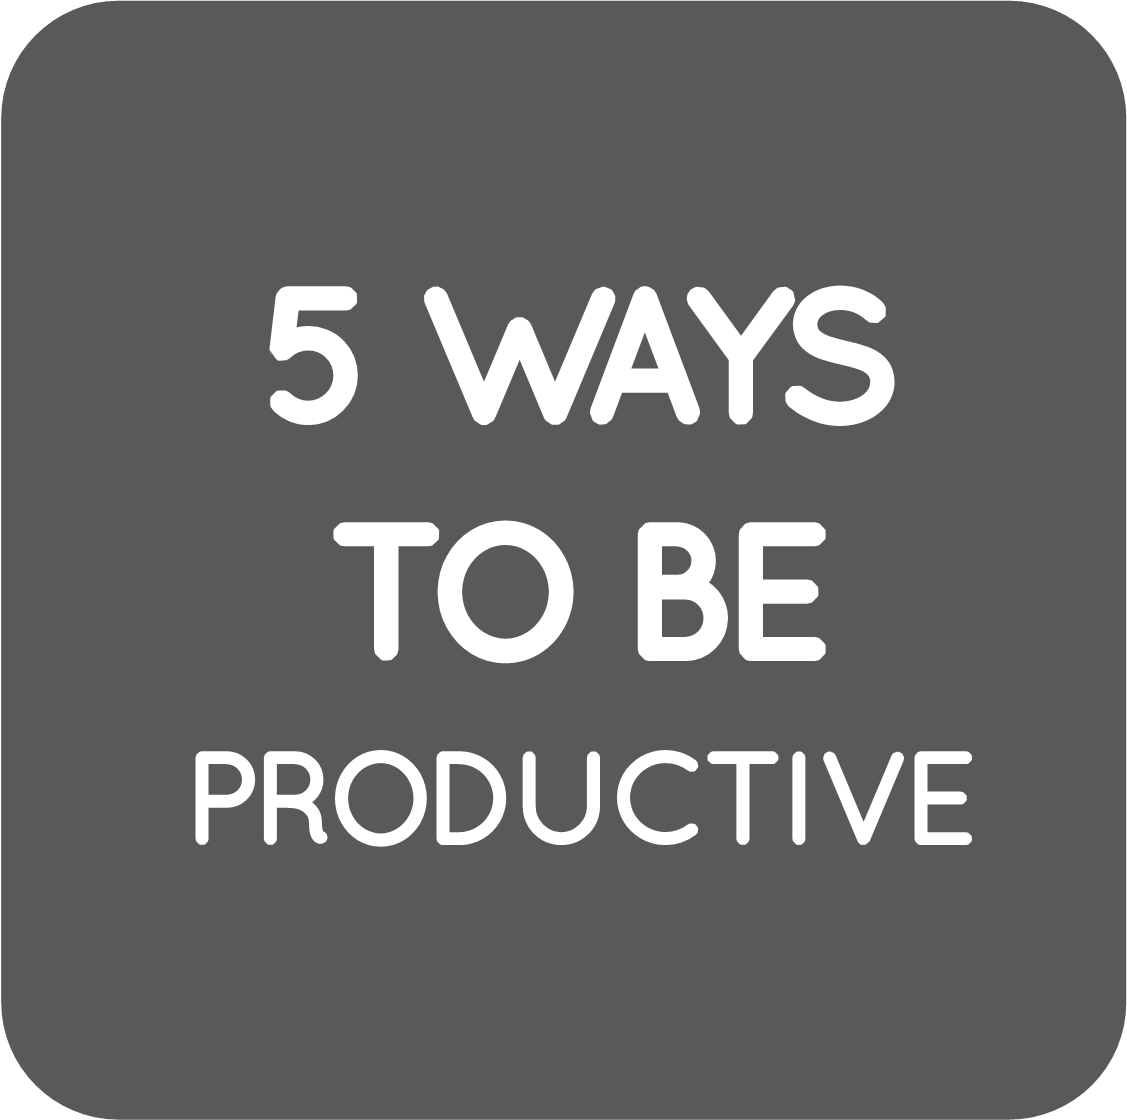 06-5 ways to be productive.png